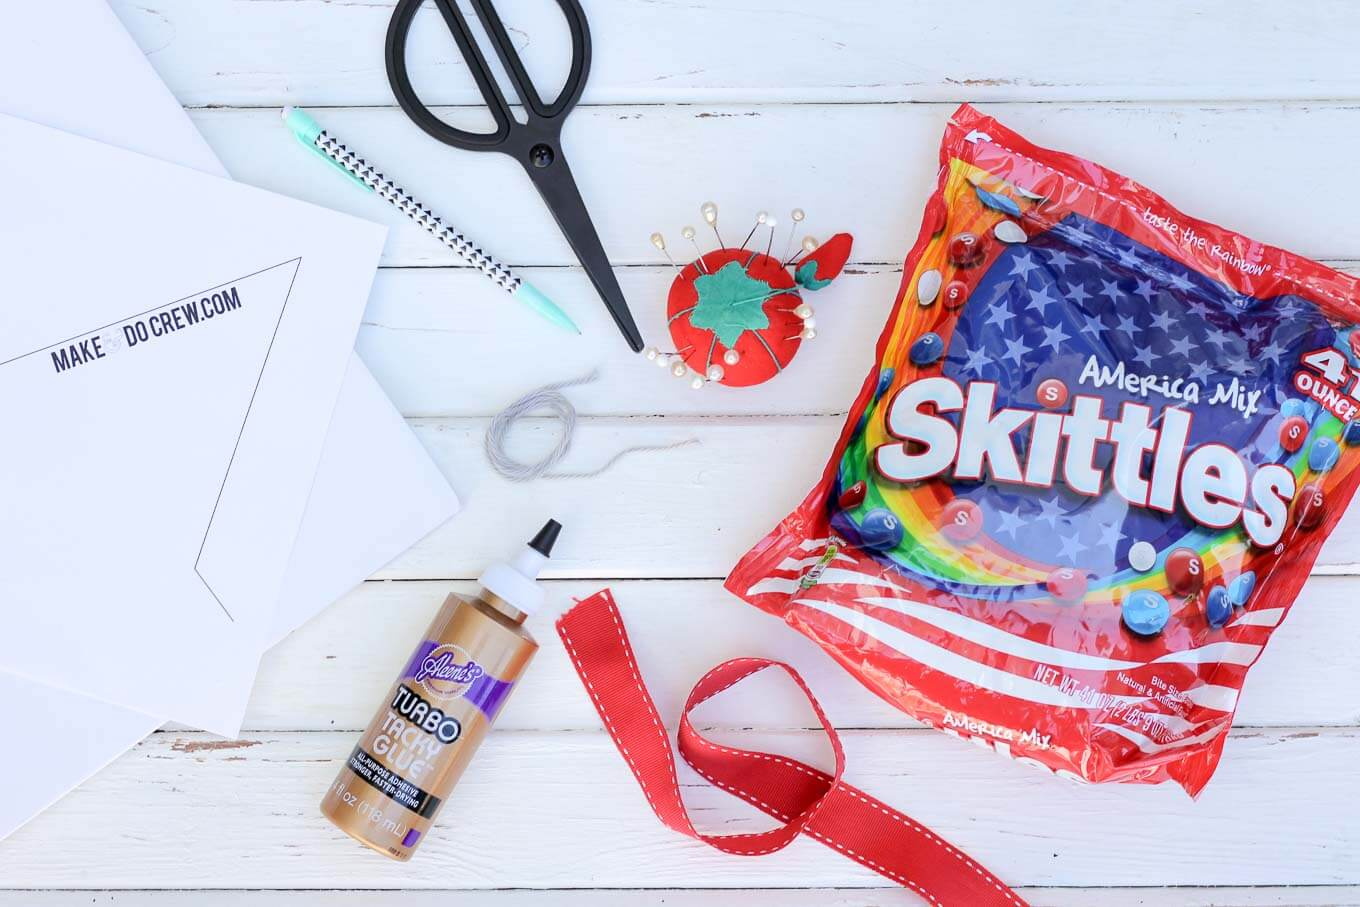 This patriotic mandala makes a festive Memorial Day, Labor Day or 4th of July party decoration idea. The red, white and blue American Mix Skittles add the perfect pop of color for this show stopping DIY decor idea. | MakeAndDoCrew.com #SkittlesAmericaMix #tastetherainbow #shop